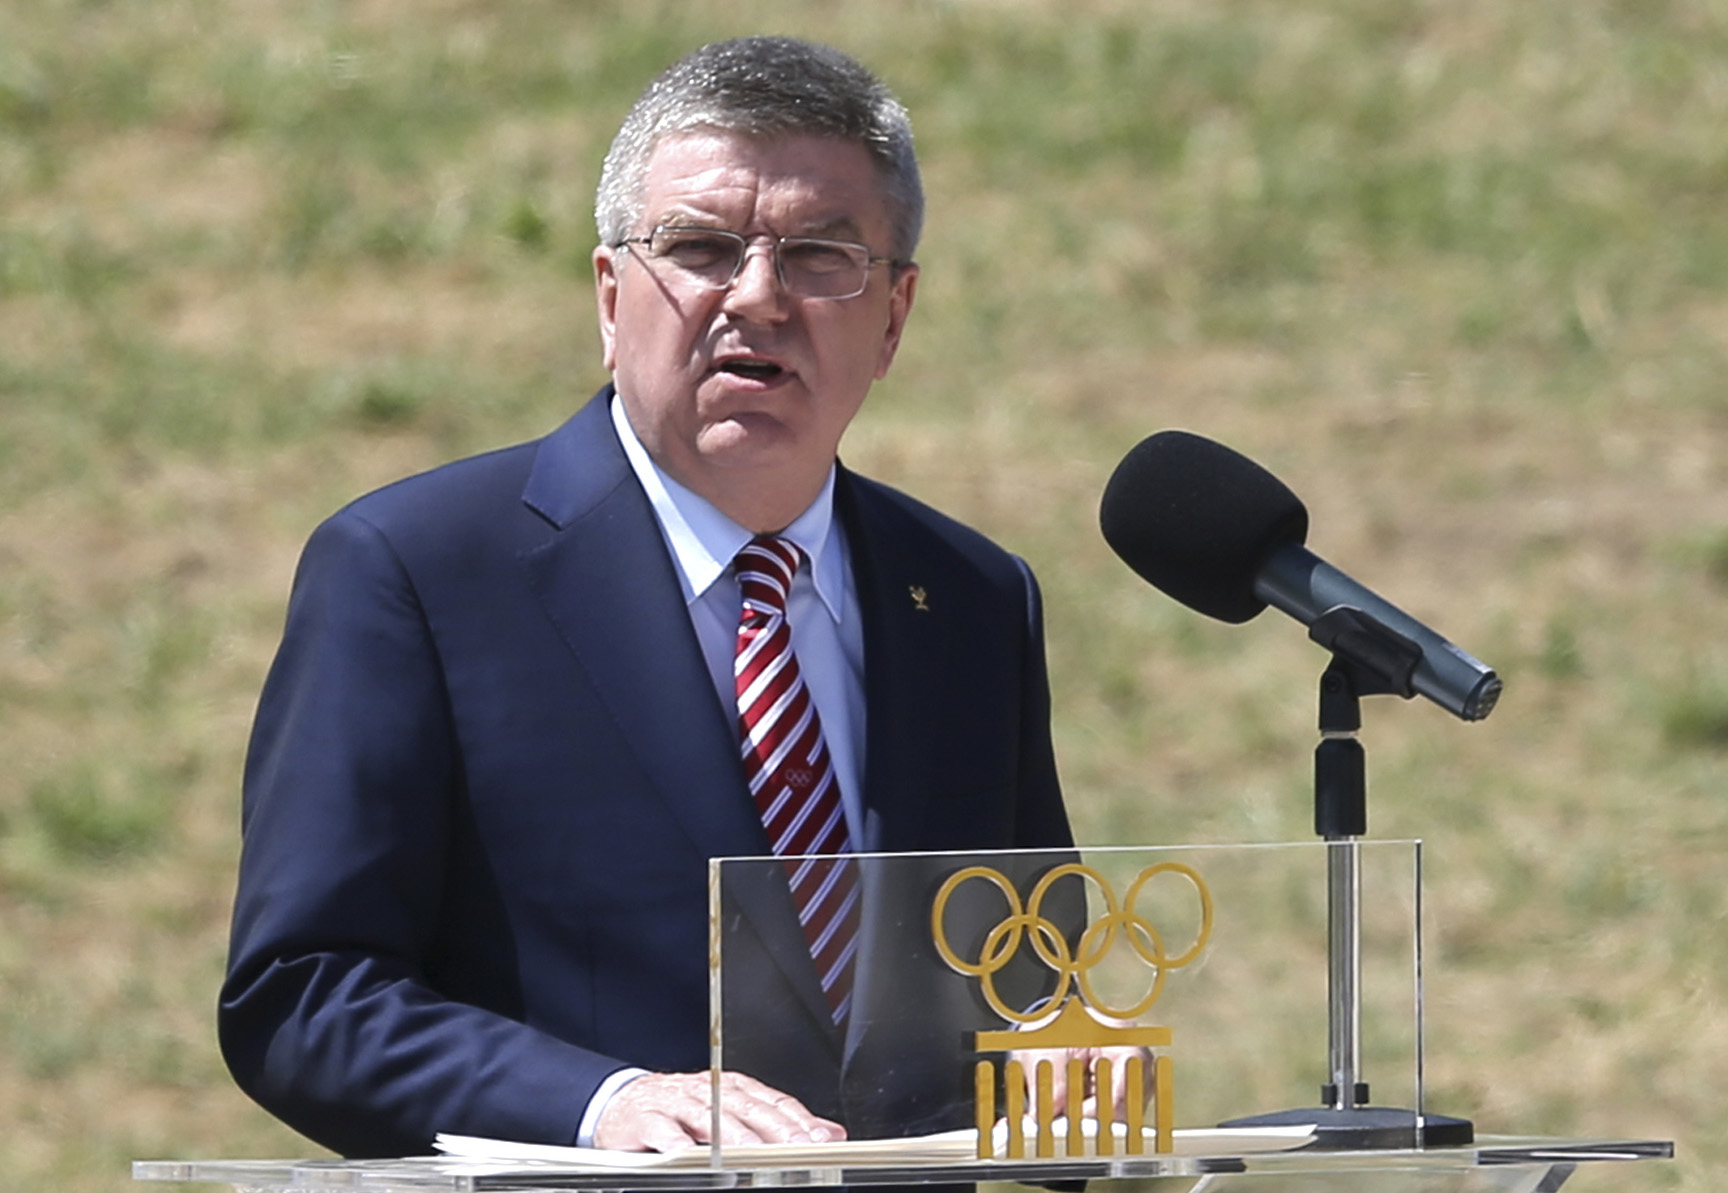 FILE- In this Thursday, April 21, 2016 file photo, IOC President Thomas Bach delivers a speech during the ceremonial lighting of the Olympic flame in Ancient Olympia, Greece. Bach says entire sports federations could be suspended if allegations of state-s